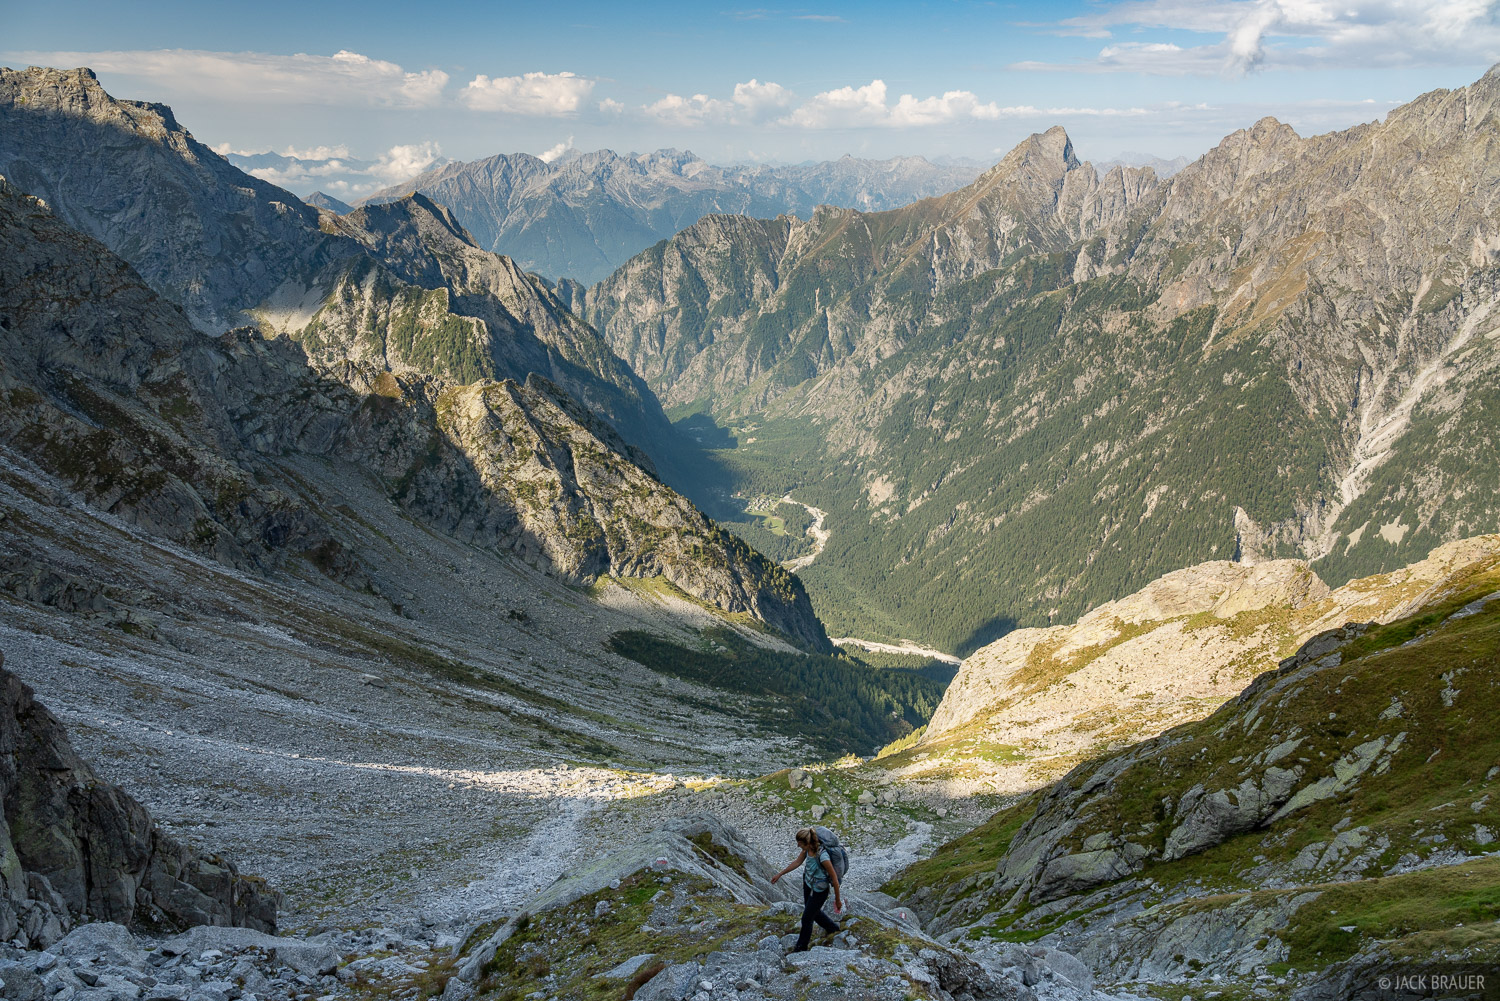 Italy, Passo del Barbacan, Rhaetian Alps, Val Codera, hiking, photo